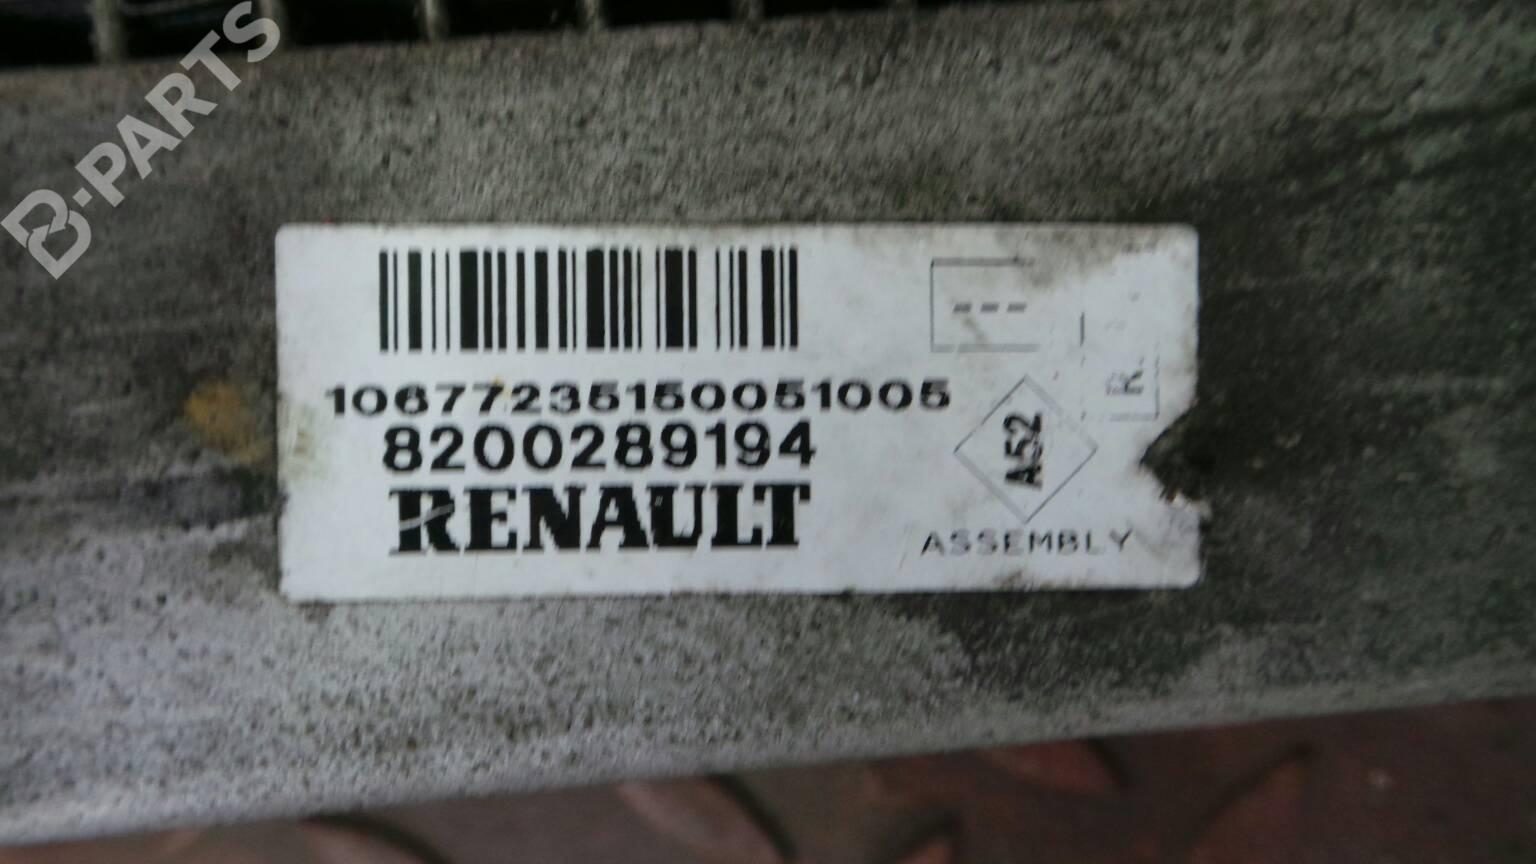 hight resolution of water radiator 8200289194 renault clio iii br0 1 cr0